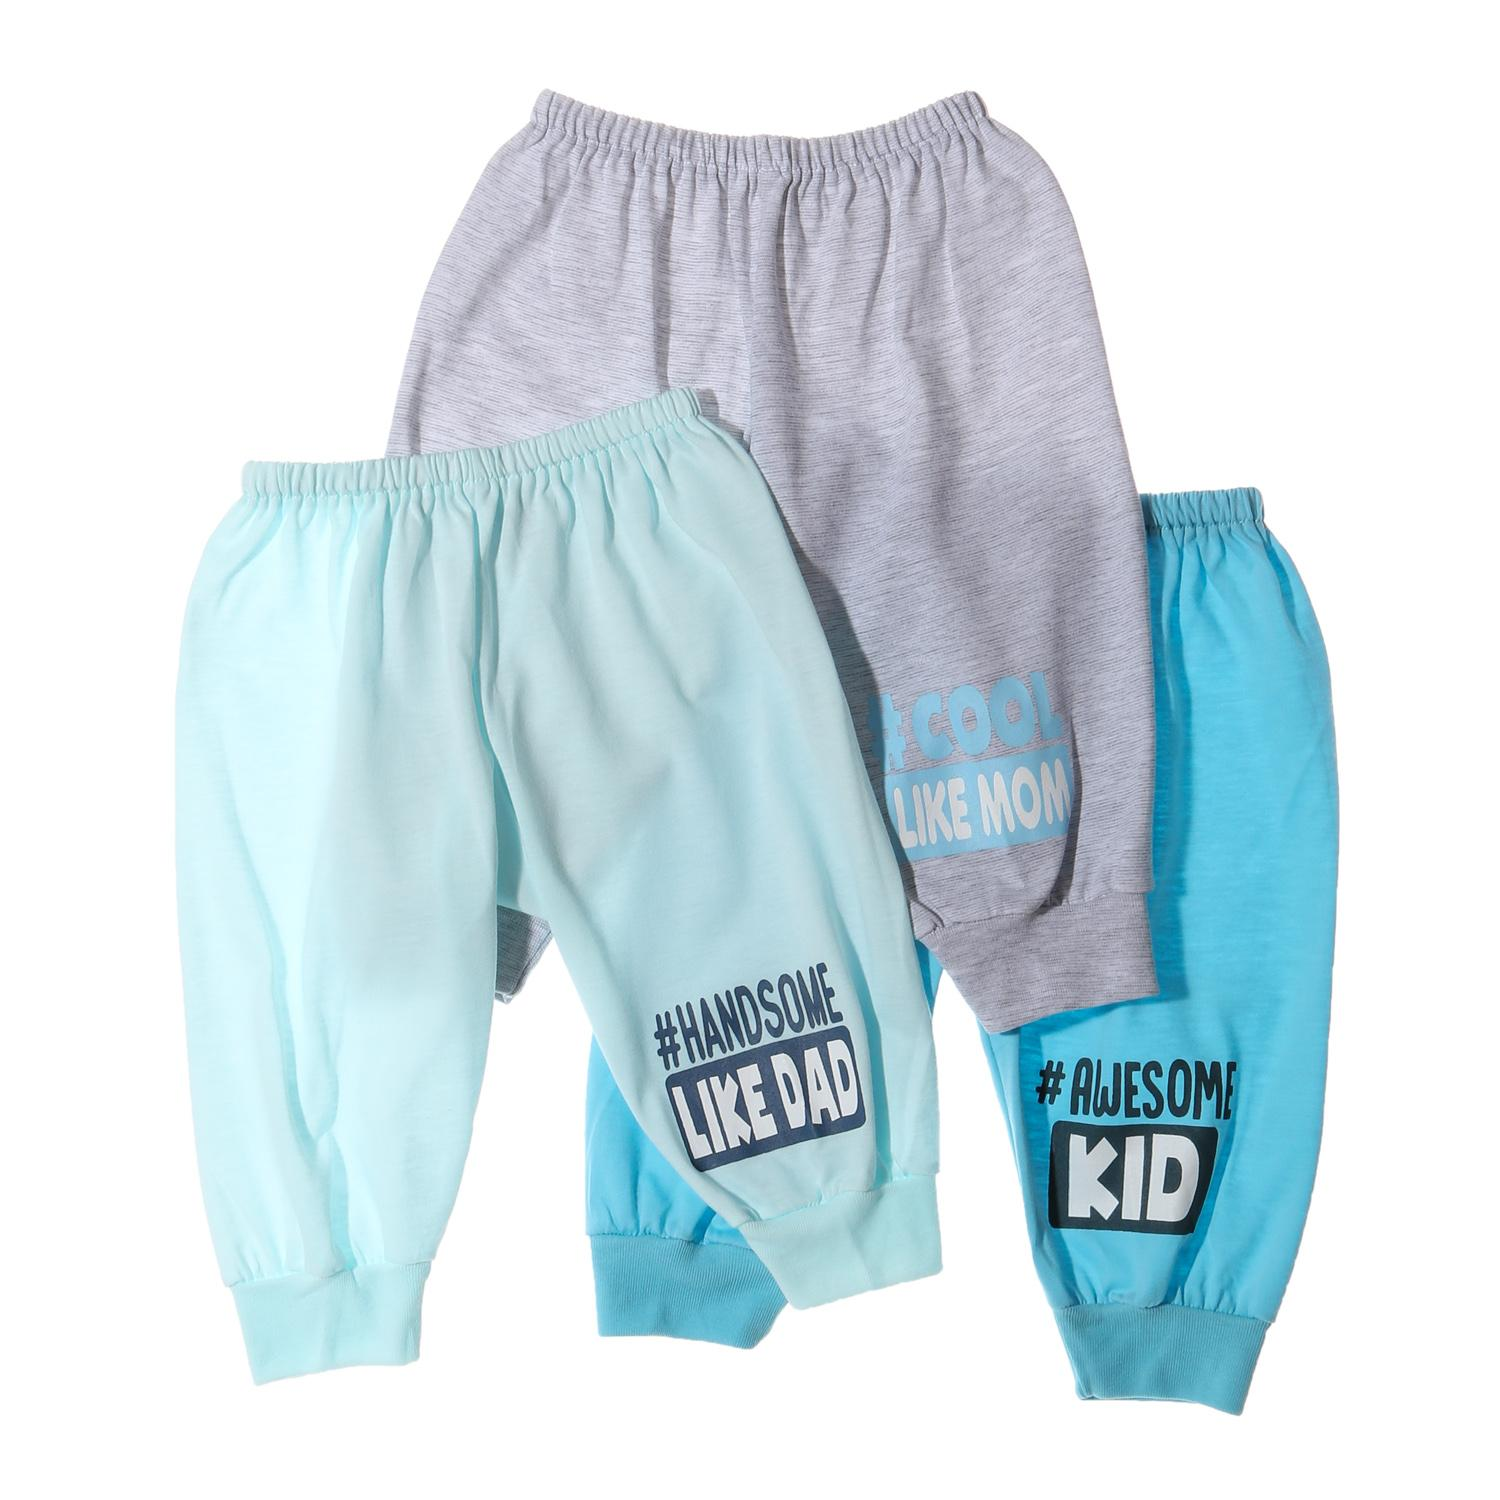 Sm Basics Baby Boys 3-Piece Awesome Kid Pajama Set By The Sm Store.